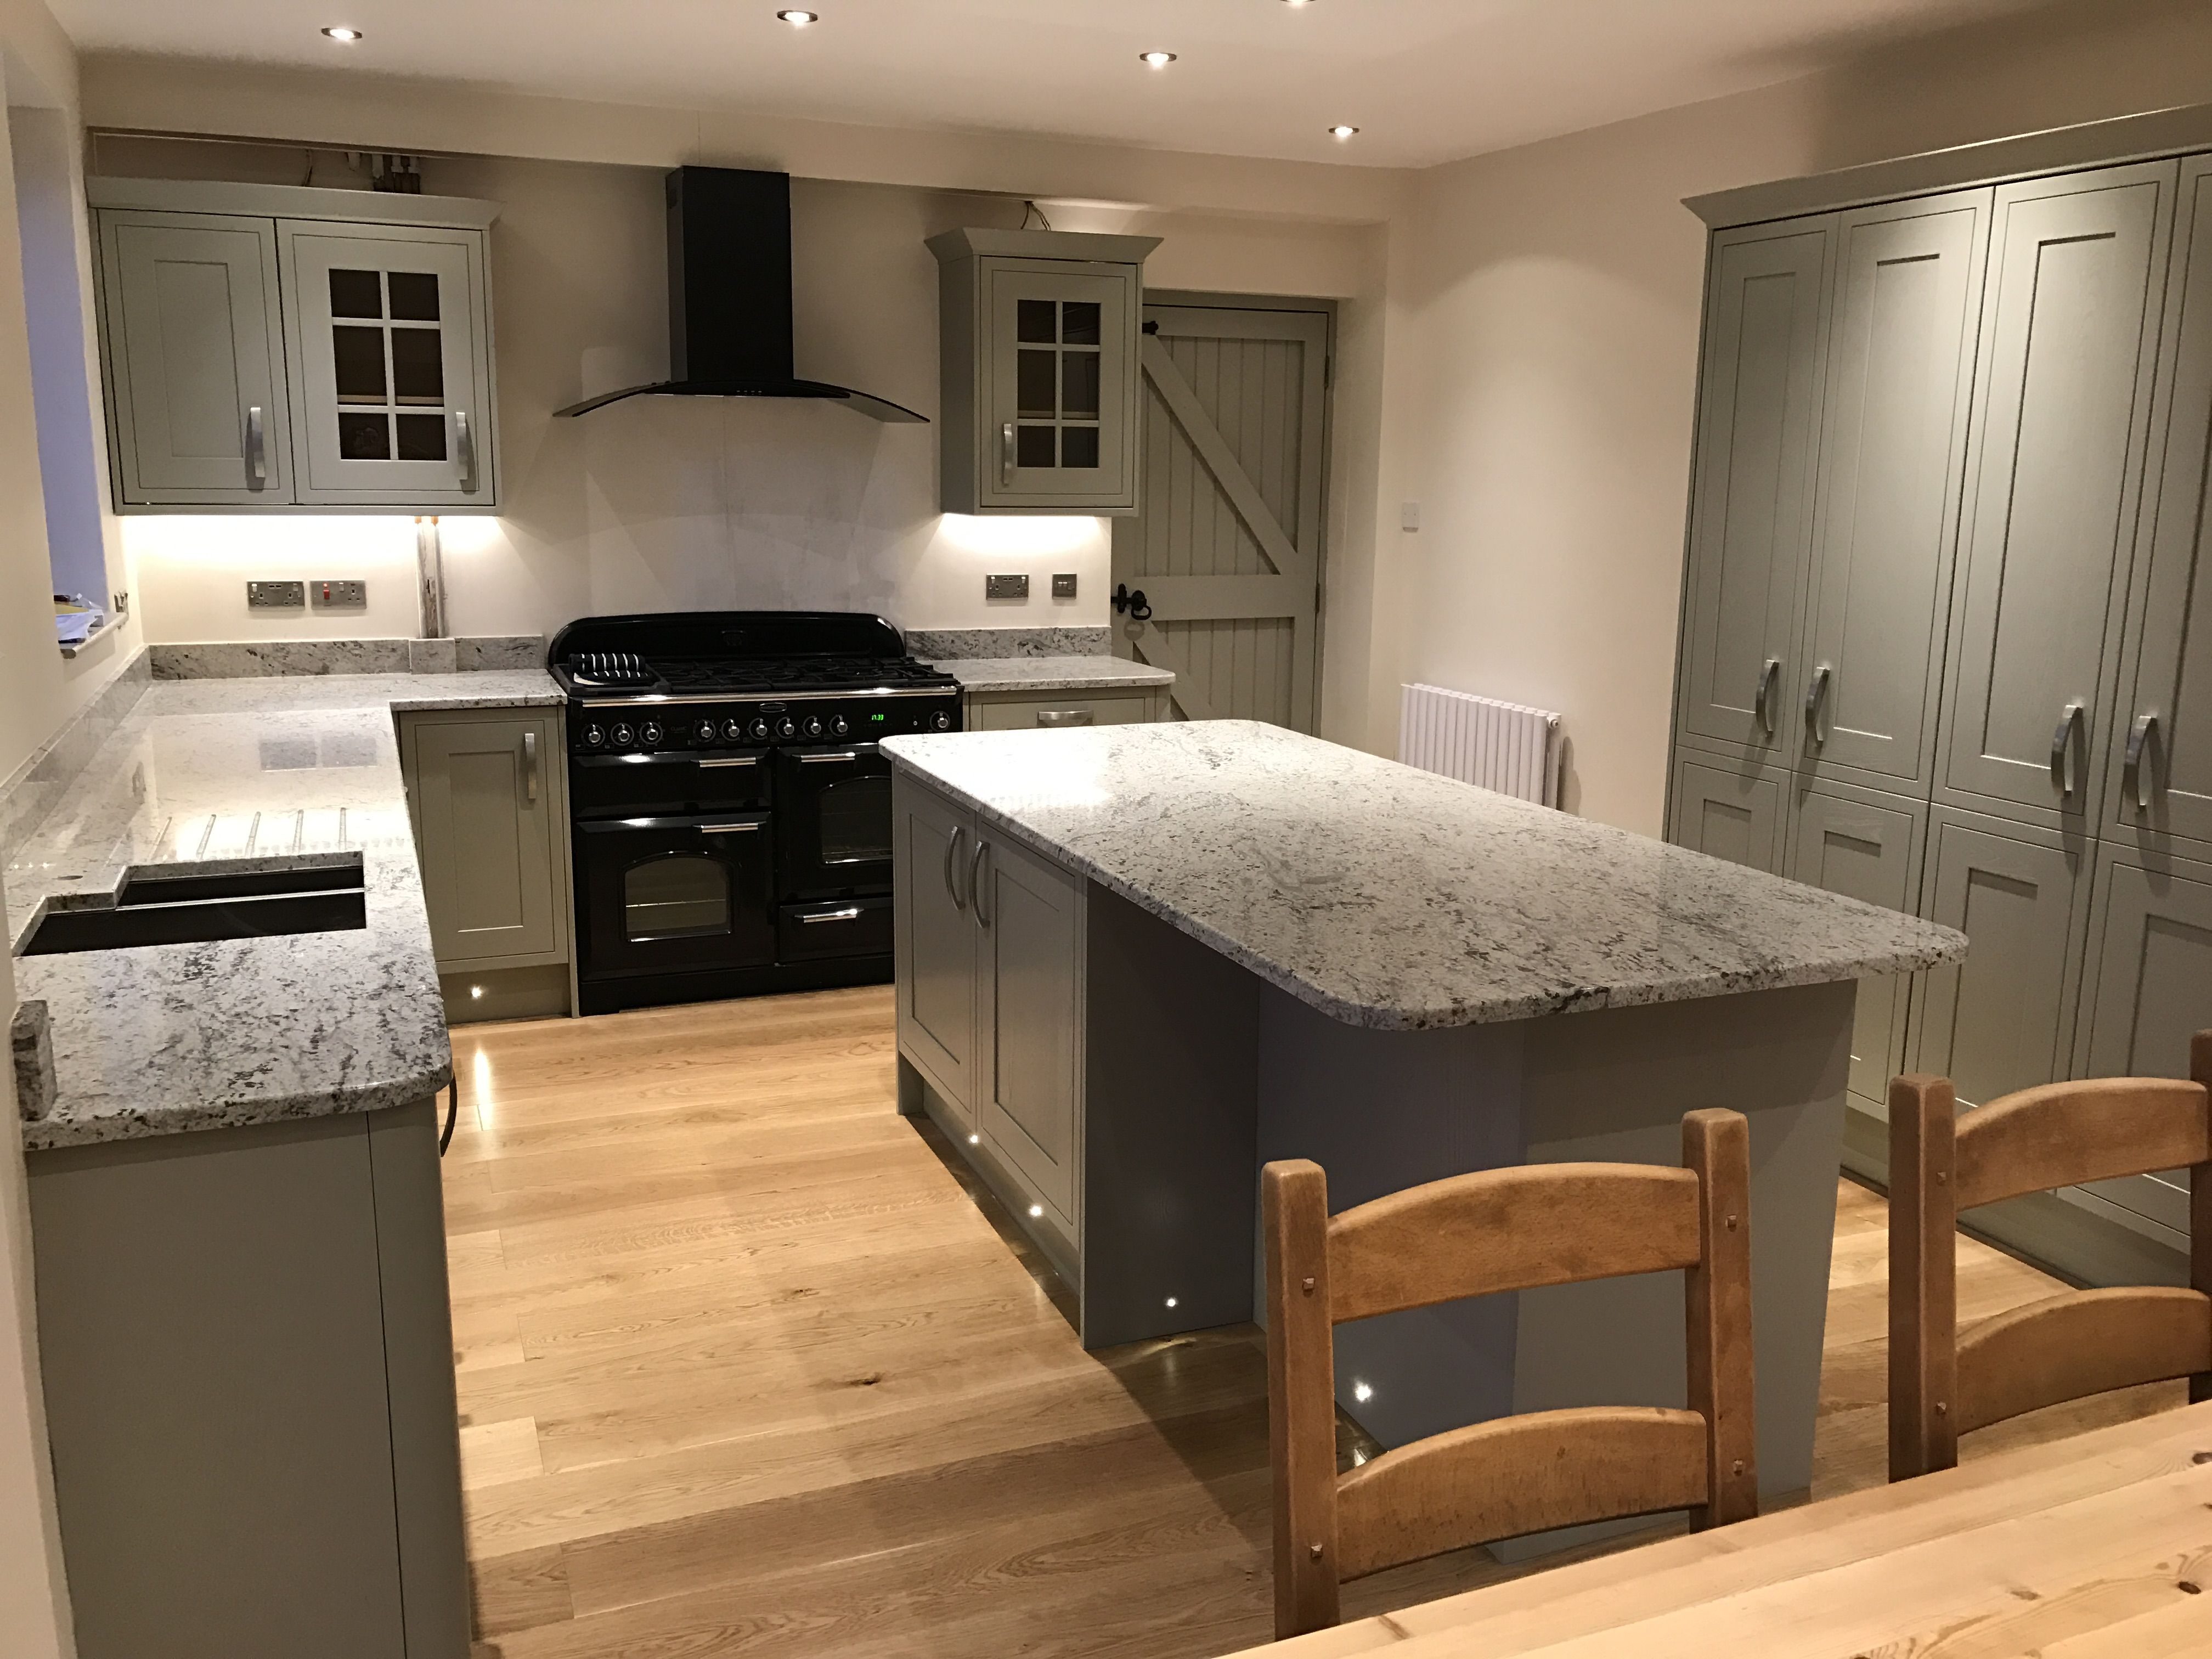 Howden's Tewkesbury Framed Skye kitchen with antique white